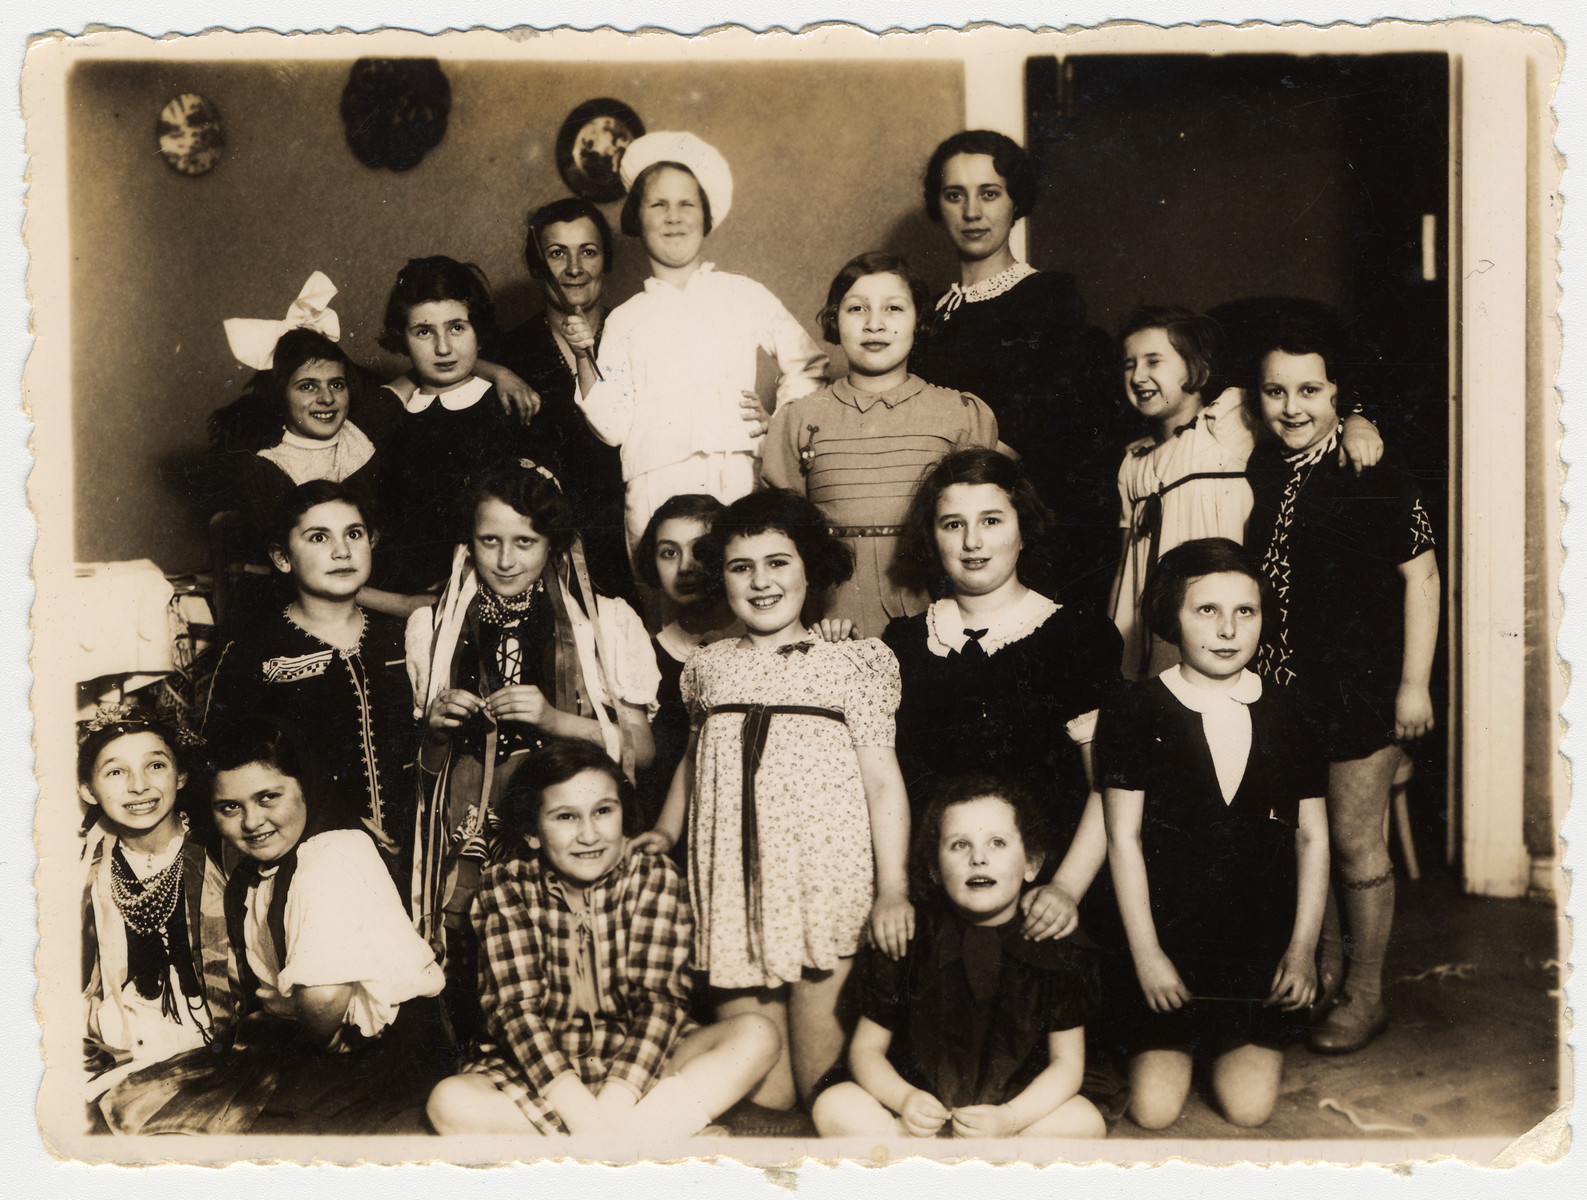 A group Polish Jewish girls, many of whom are wearing costumes, attend the 10th birthday party of Inka Gerson.  Among those pictured is Inka Gerson.  Her cousin, Janka Stillerman (later Yael Star) is wearing a cook's outfit.  The costumes with the ribbons and beads are a national Polish costume from the Krakow region.